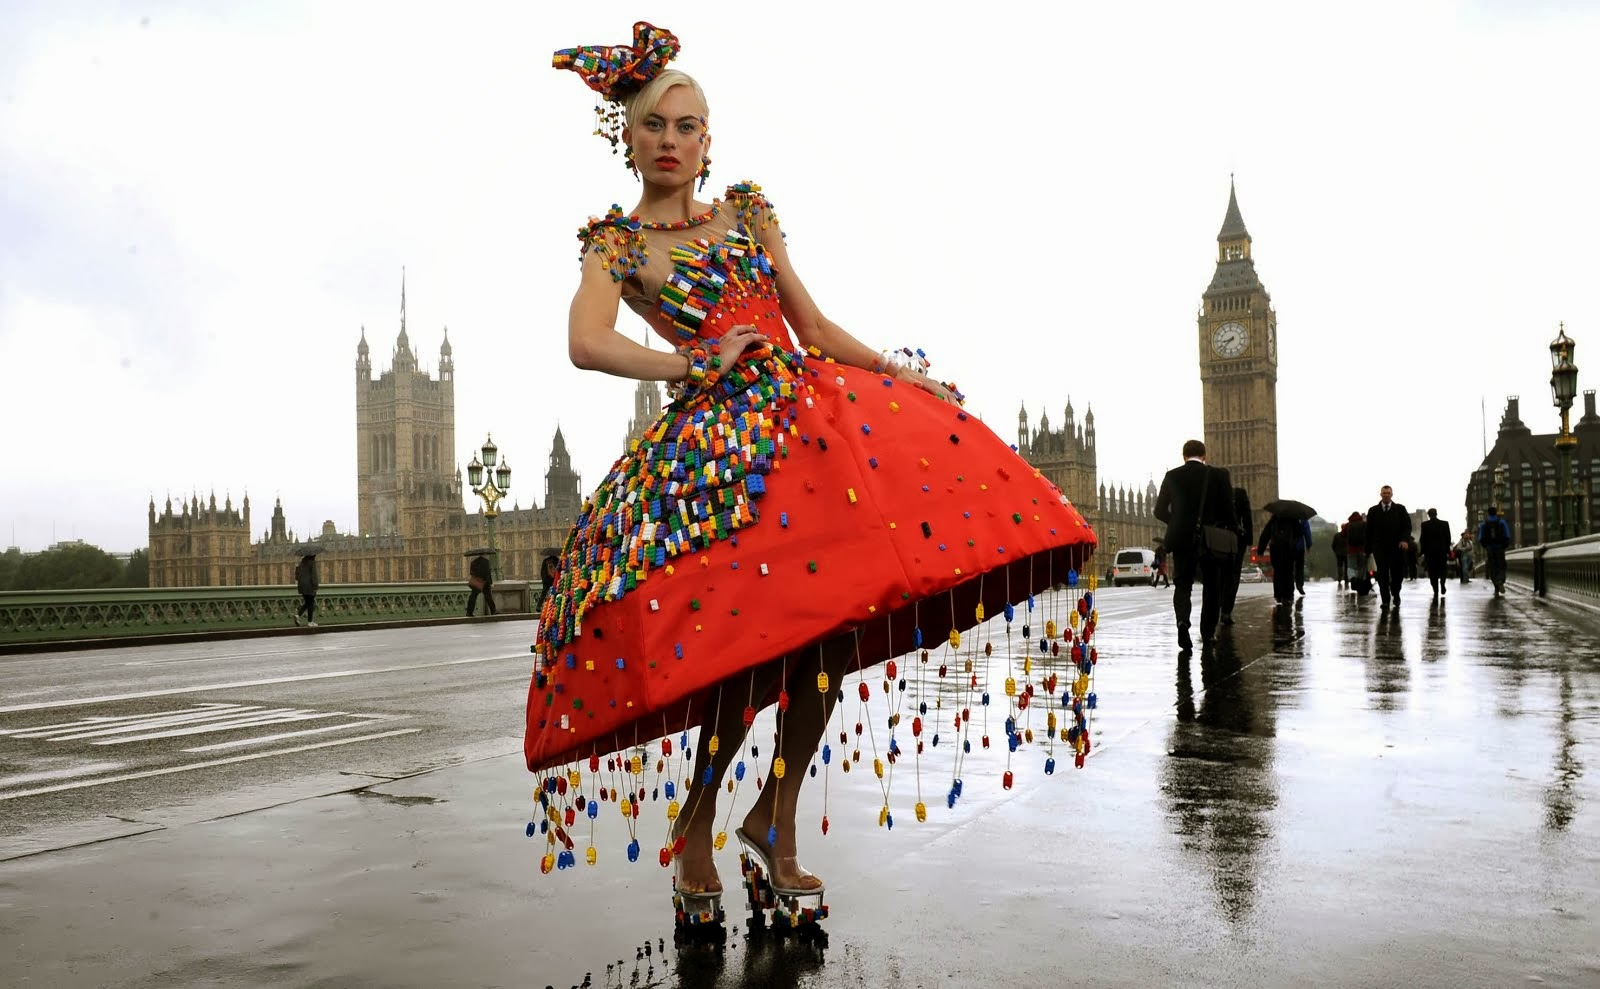 The lego dress presented at the London fashion week